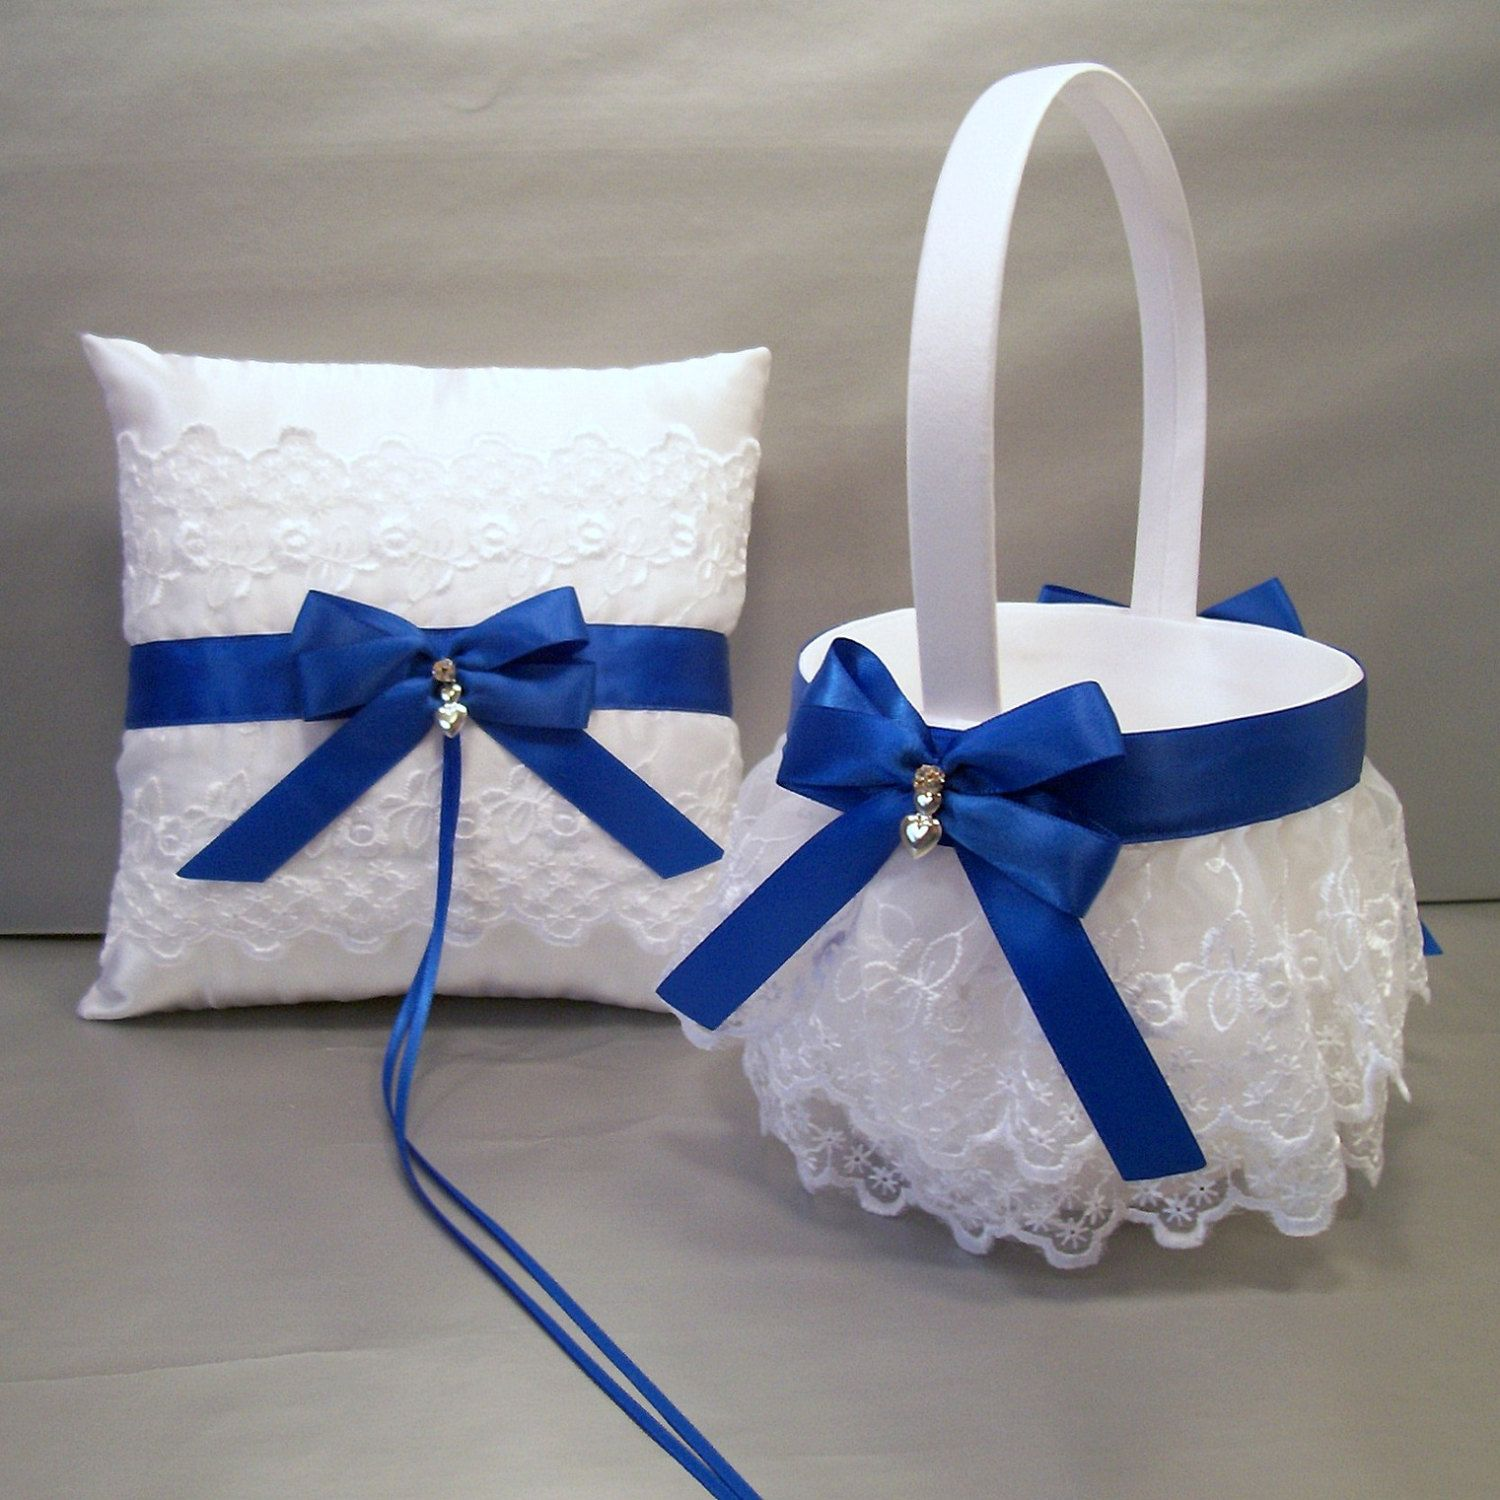 special bow flower allison set wedding and royal loop ivory white blue double or pillow search line color all pin basket ring girl charm rings on bridal hearts moments bearer baskets google